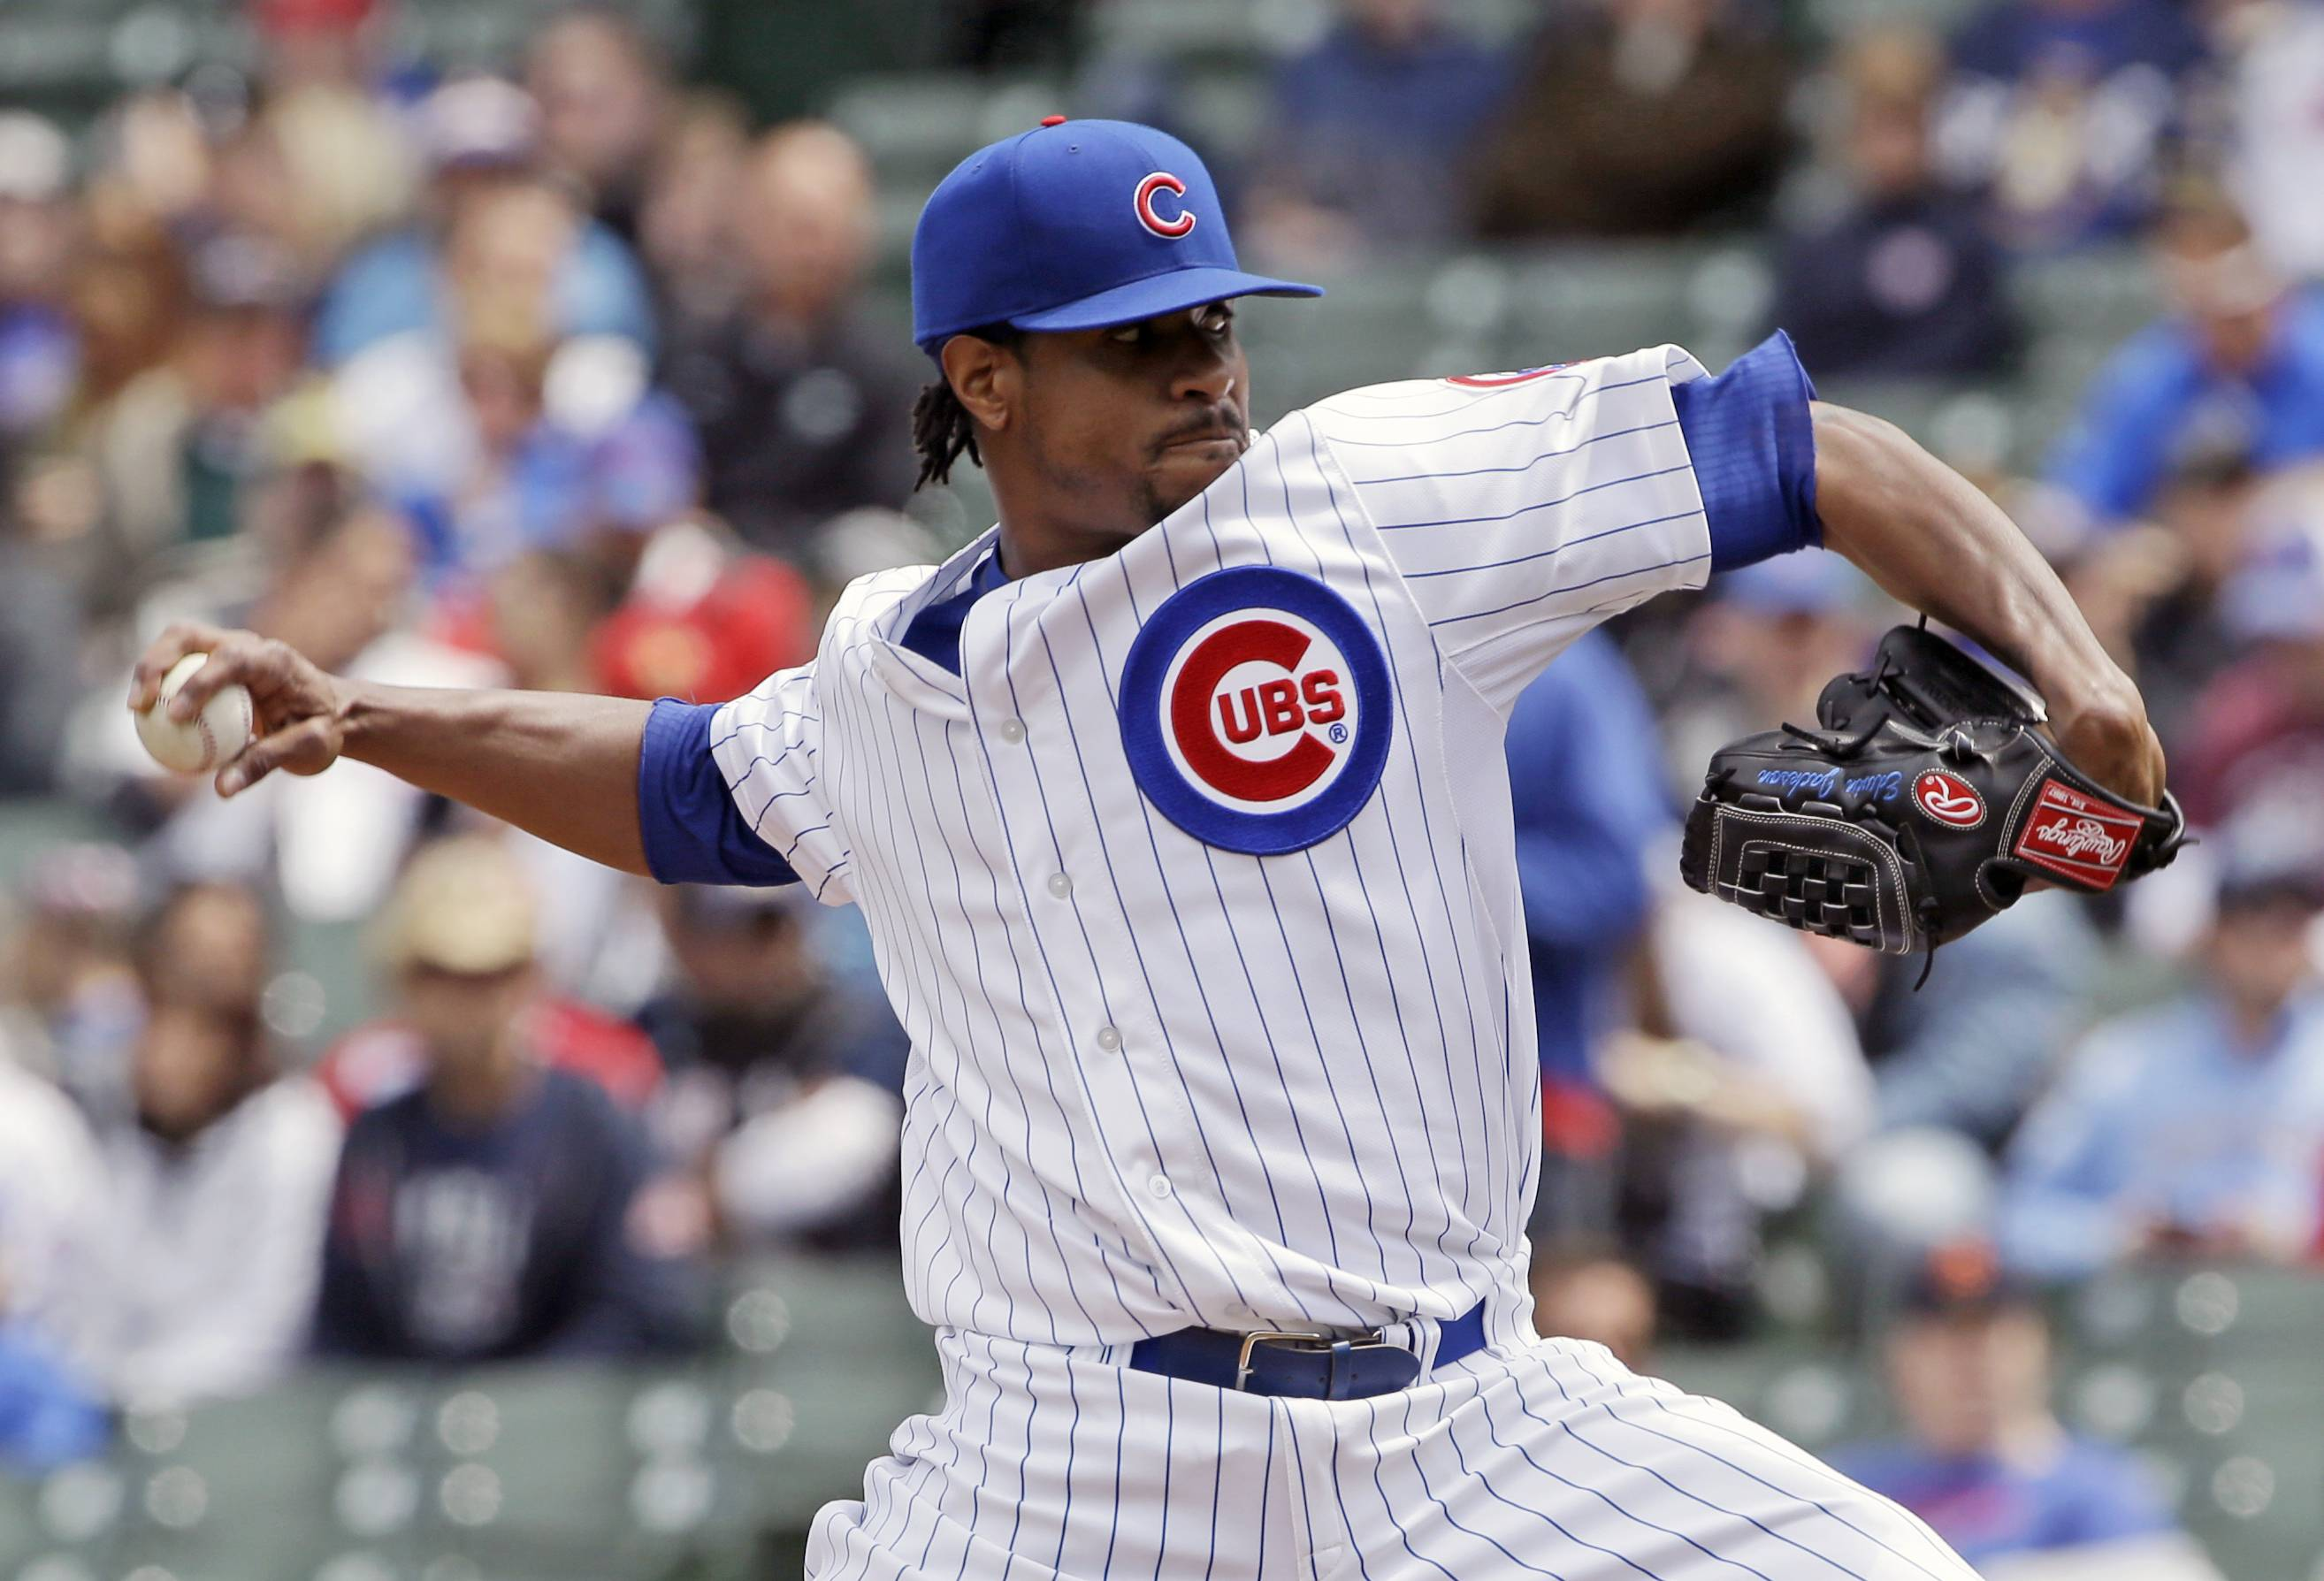 Chicago Cubs starter Edwin Jackson throws against the Milwaukee Brewers during the first inning of a baseball game in Chicago, Saturday, May 17, 2014. (AP Photo/Nam Y. Huh)